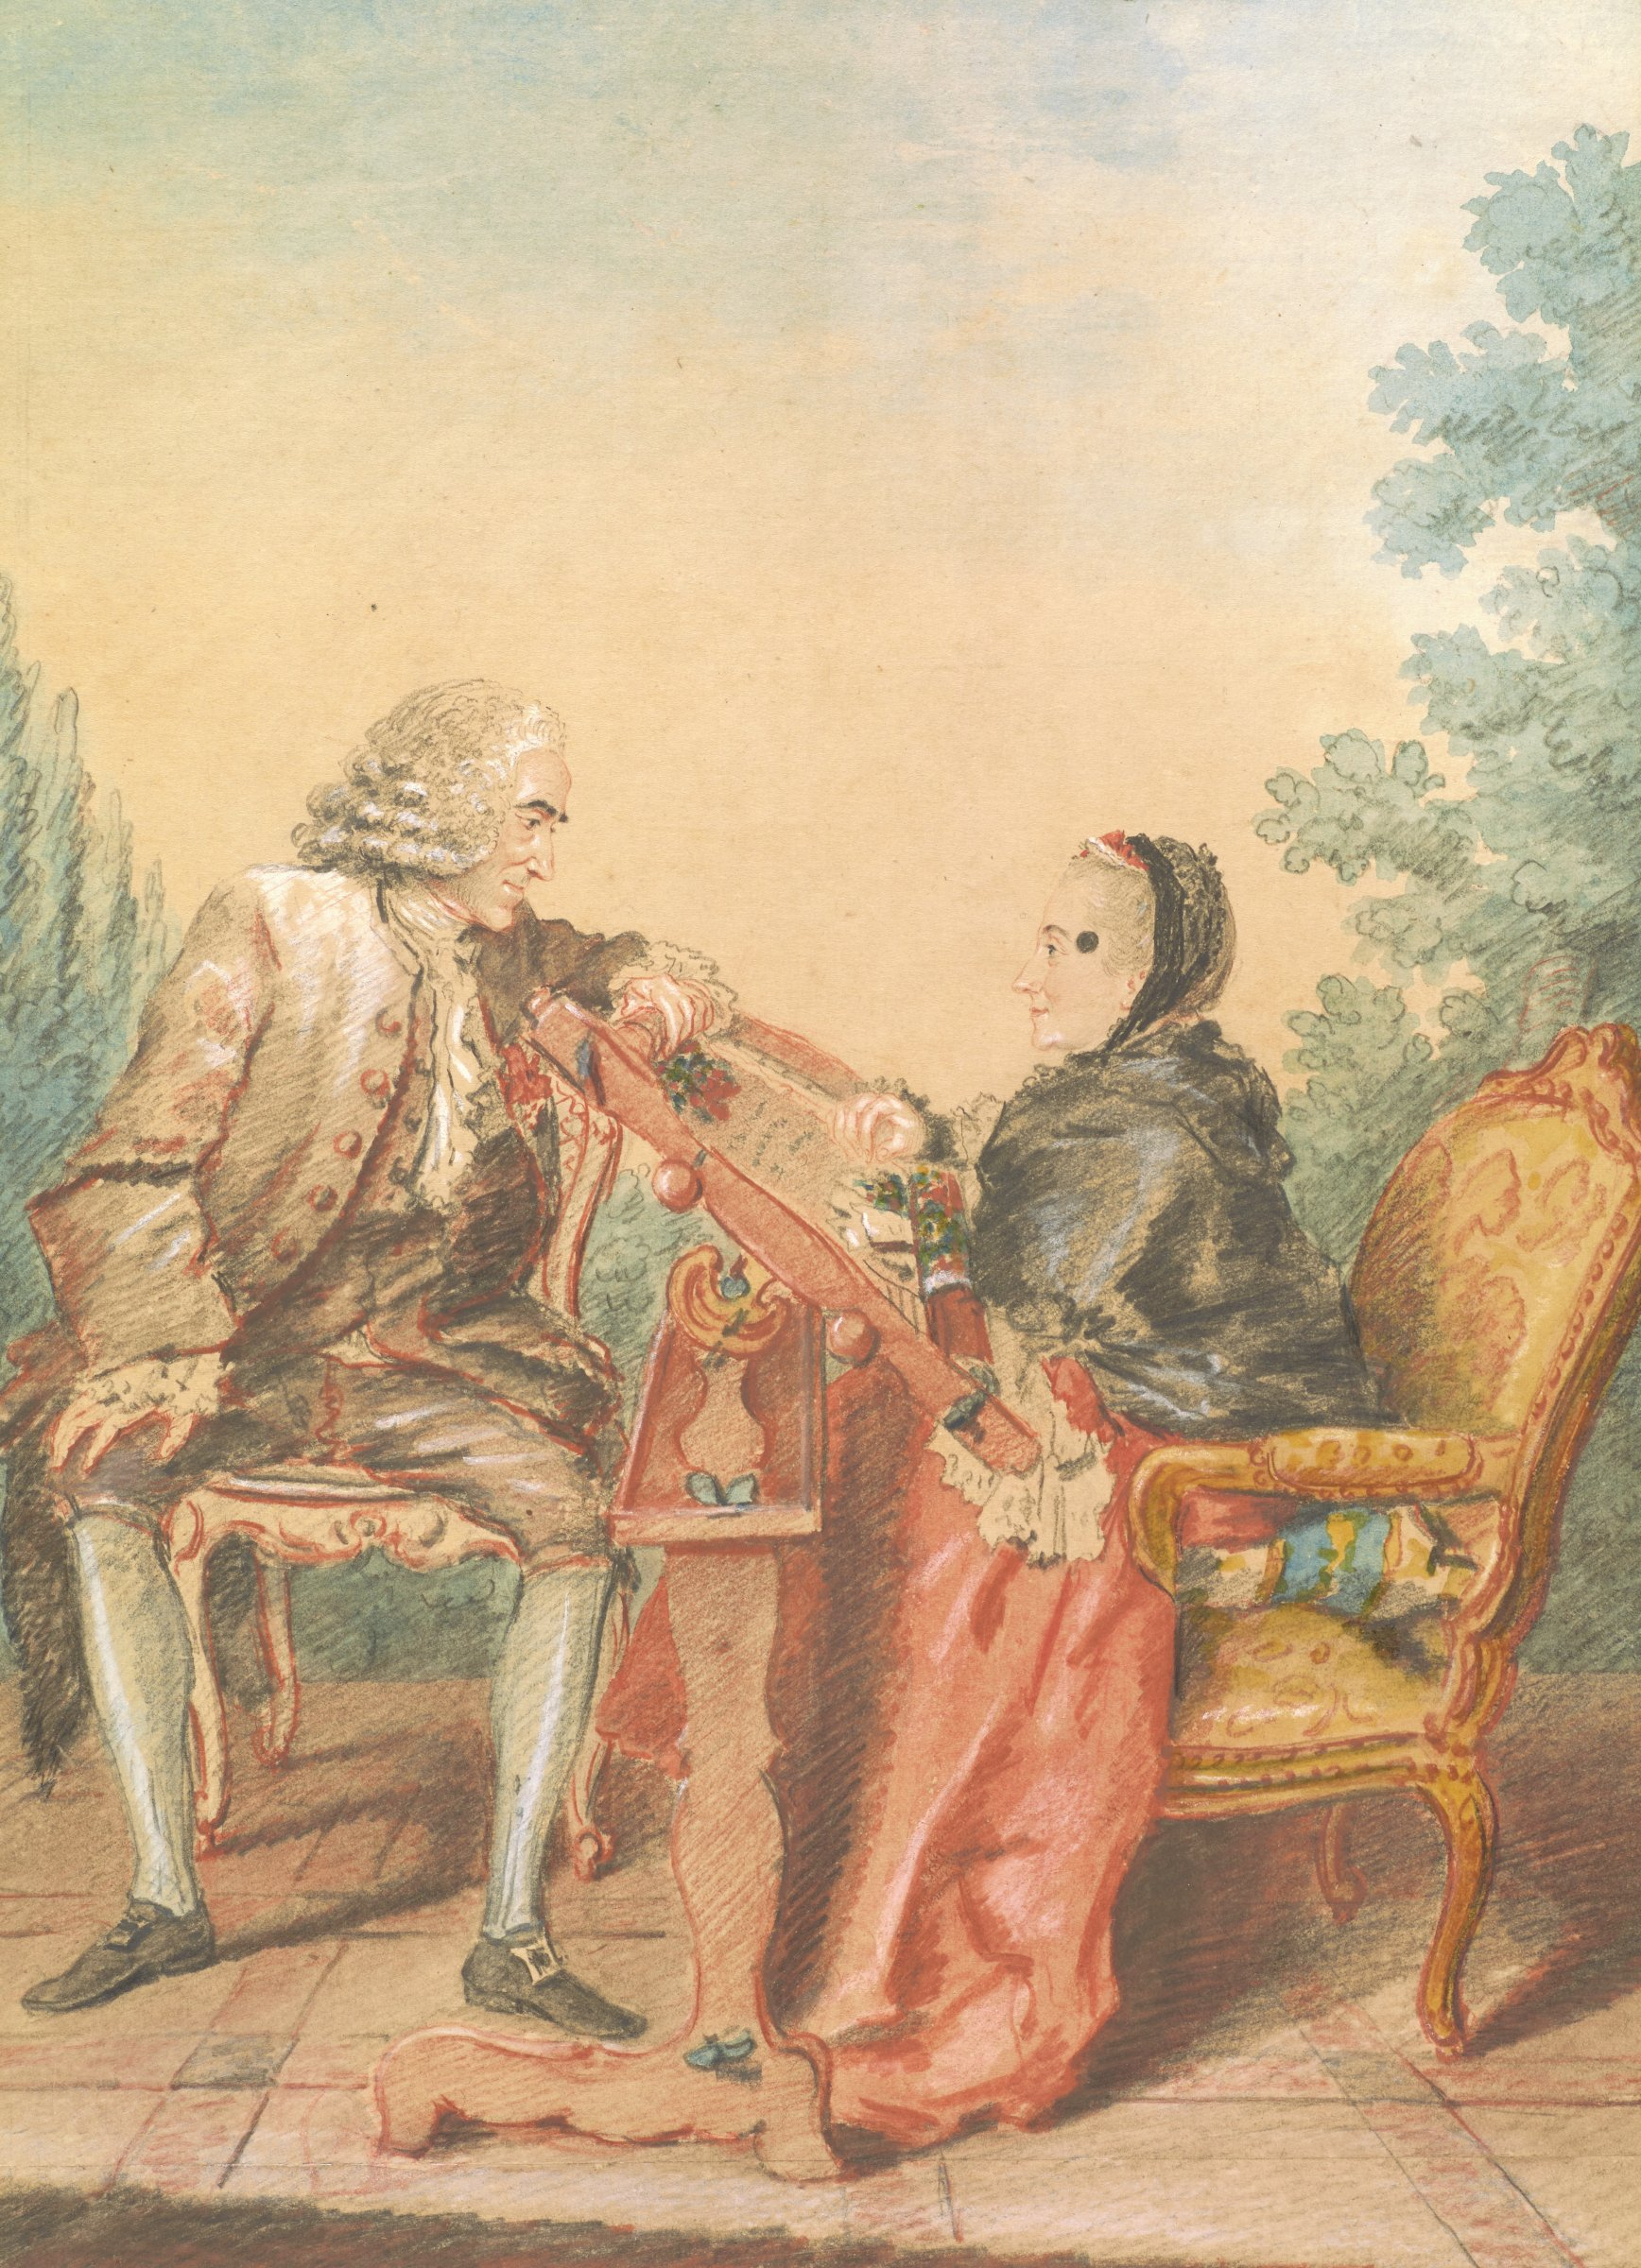 An elaborately dressed couple sits facing one another. The lady sits at an embroidery frame while the gentleman leans onto the frame. Both figures are in profile.